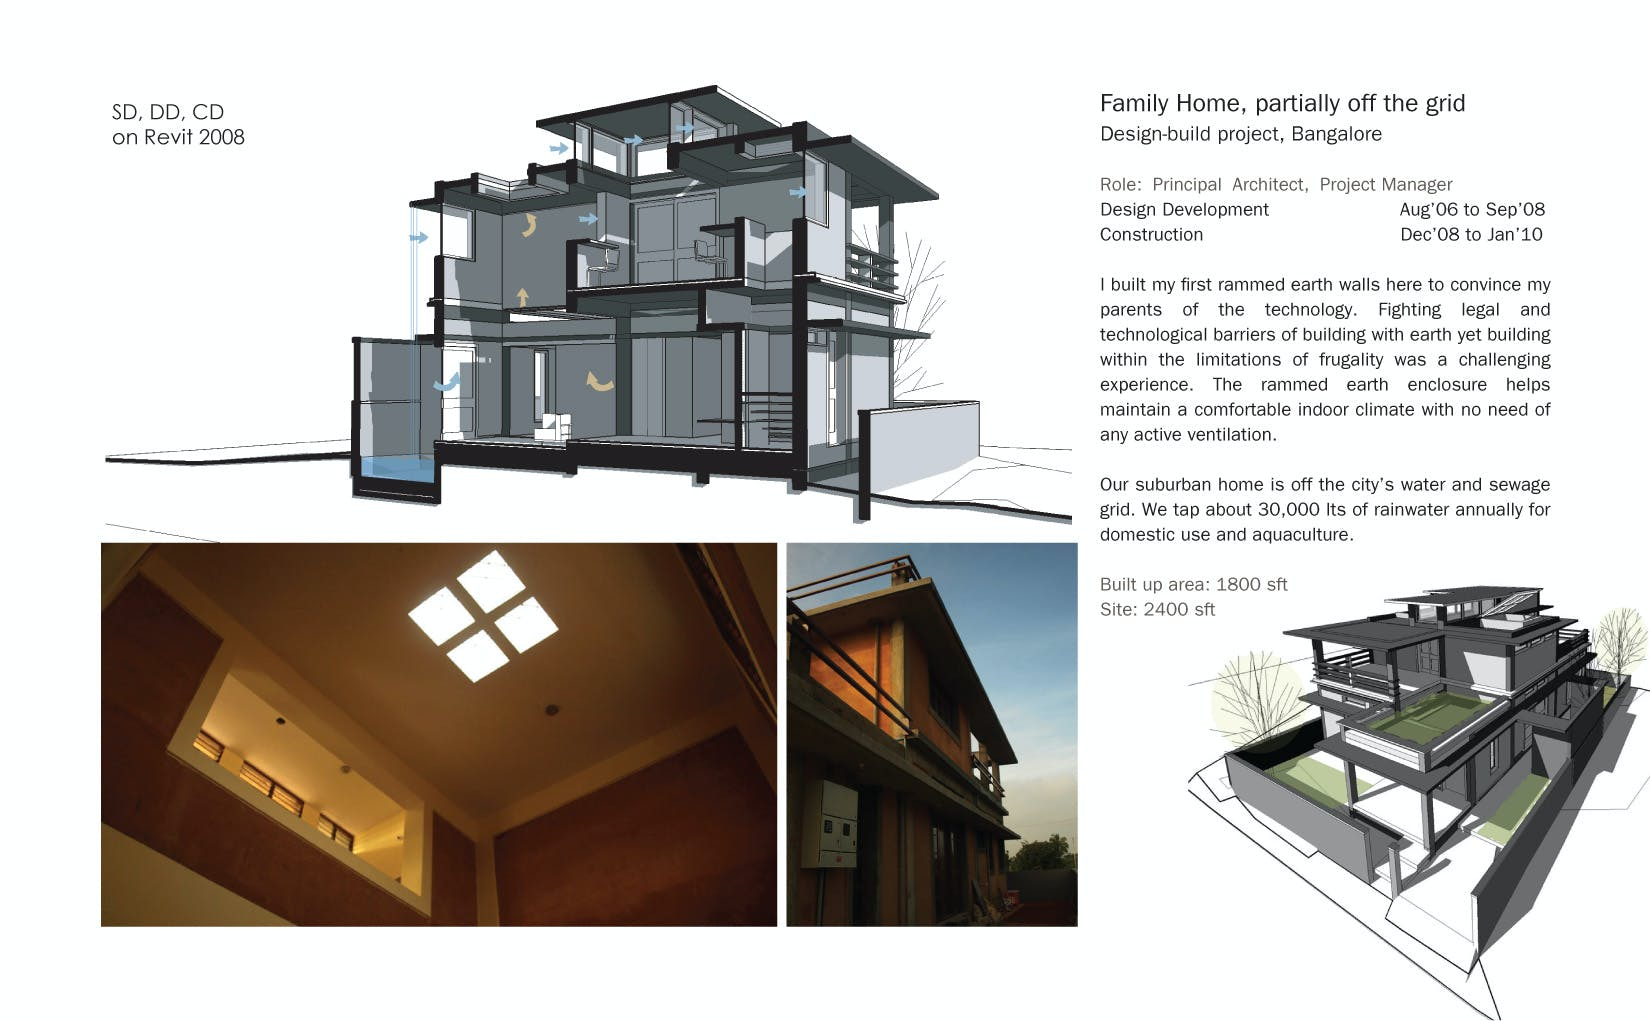 Eco Home: partially off the grid   Varun Thautam   Archinect